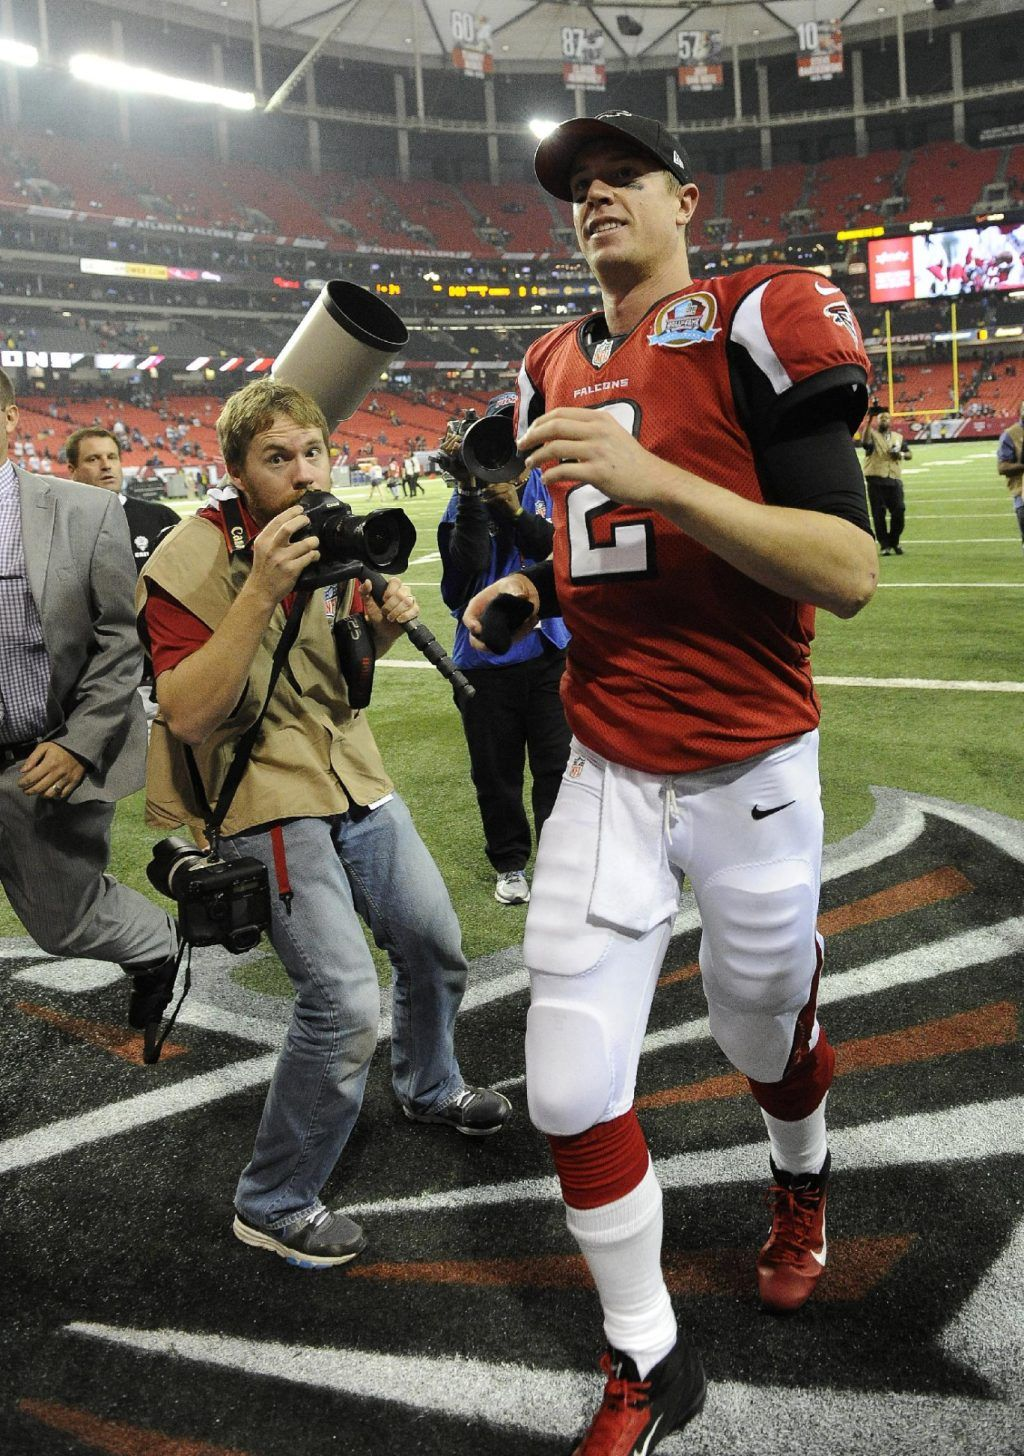 Image Detail For Atlanta Falcons Quarterback Matt Ryan 2 Walks Off The Field After The Second Half Of An Nfl Football Gam With Images Nfl Football Games Falcons Football